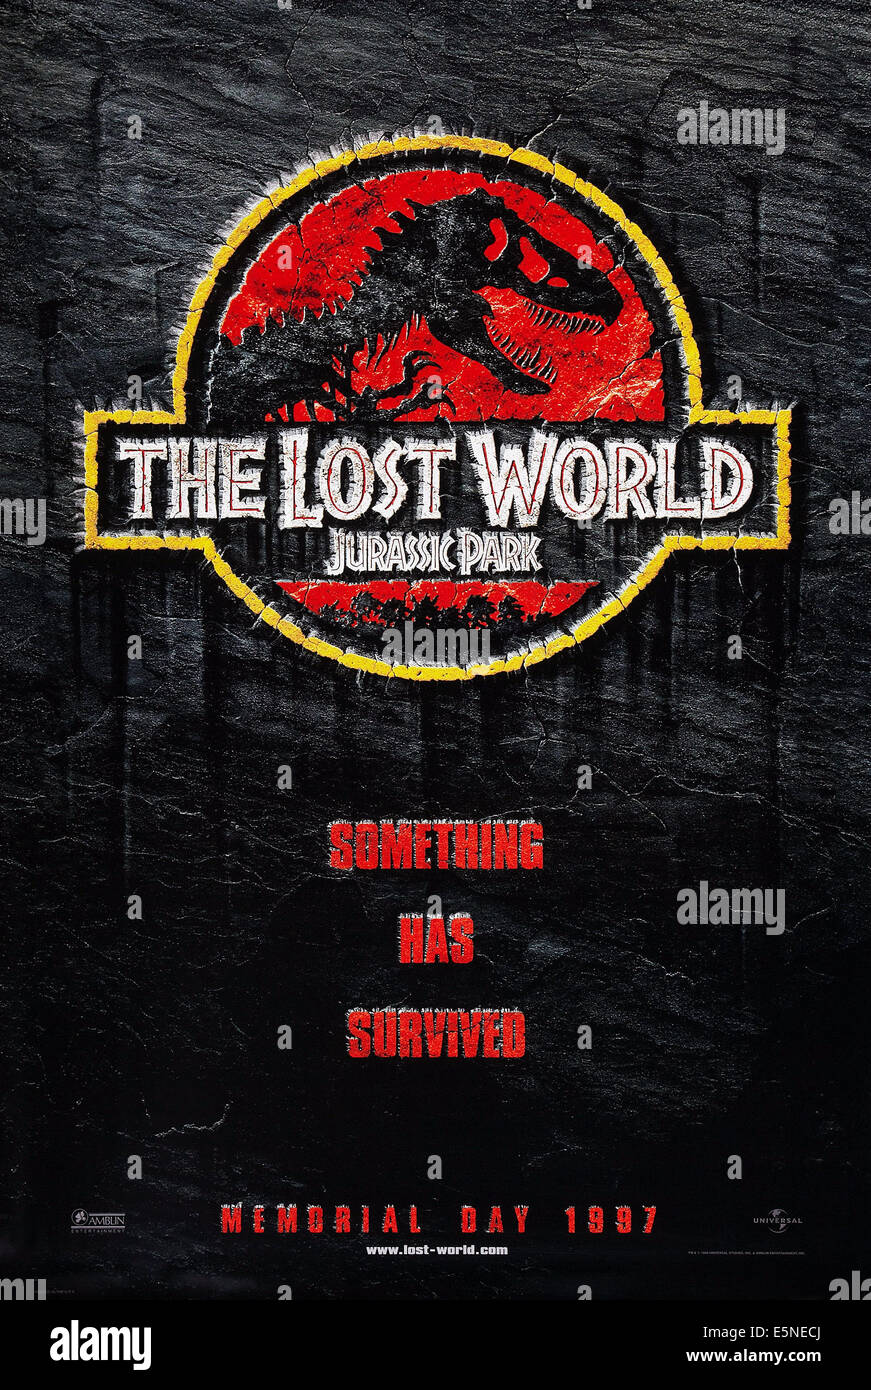 The Lost World Jurassic Park 1997 Universal Courtesy Everett Collection